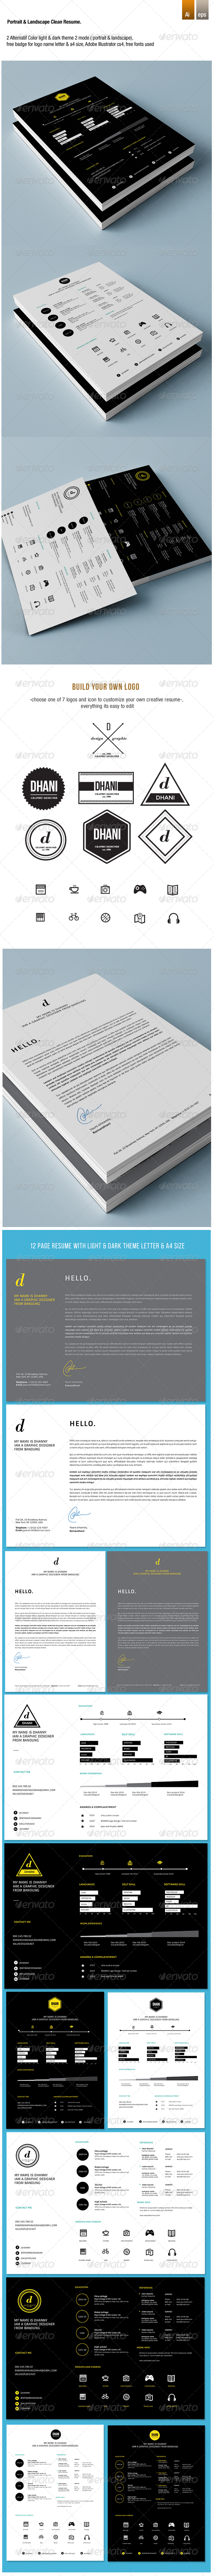 GraphicRiver Landscape & Portrait Creative CV Resume 8410009